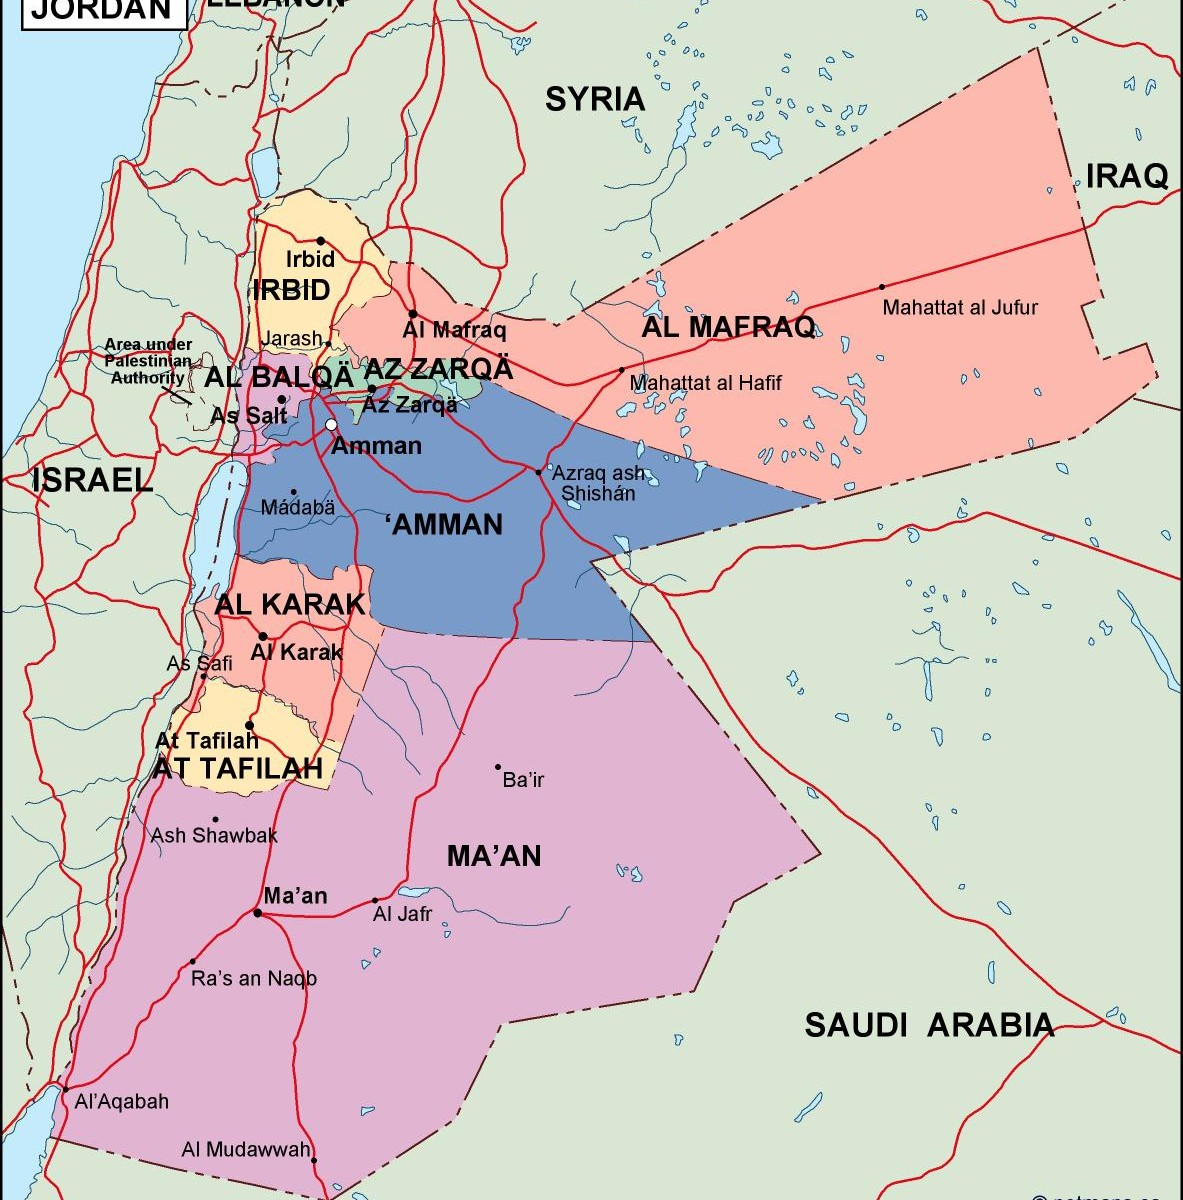 Political Map Of Jordan.Jordan Political Map Order And Download Jordan Political Map